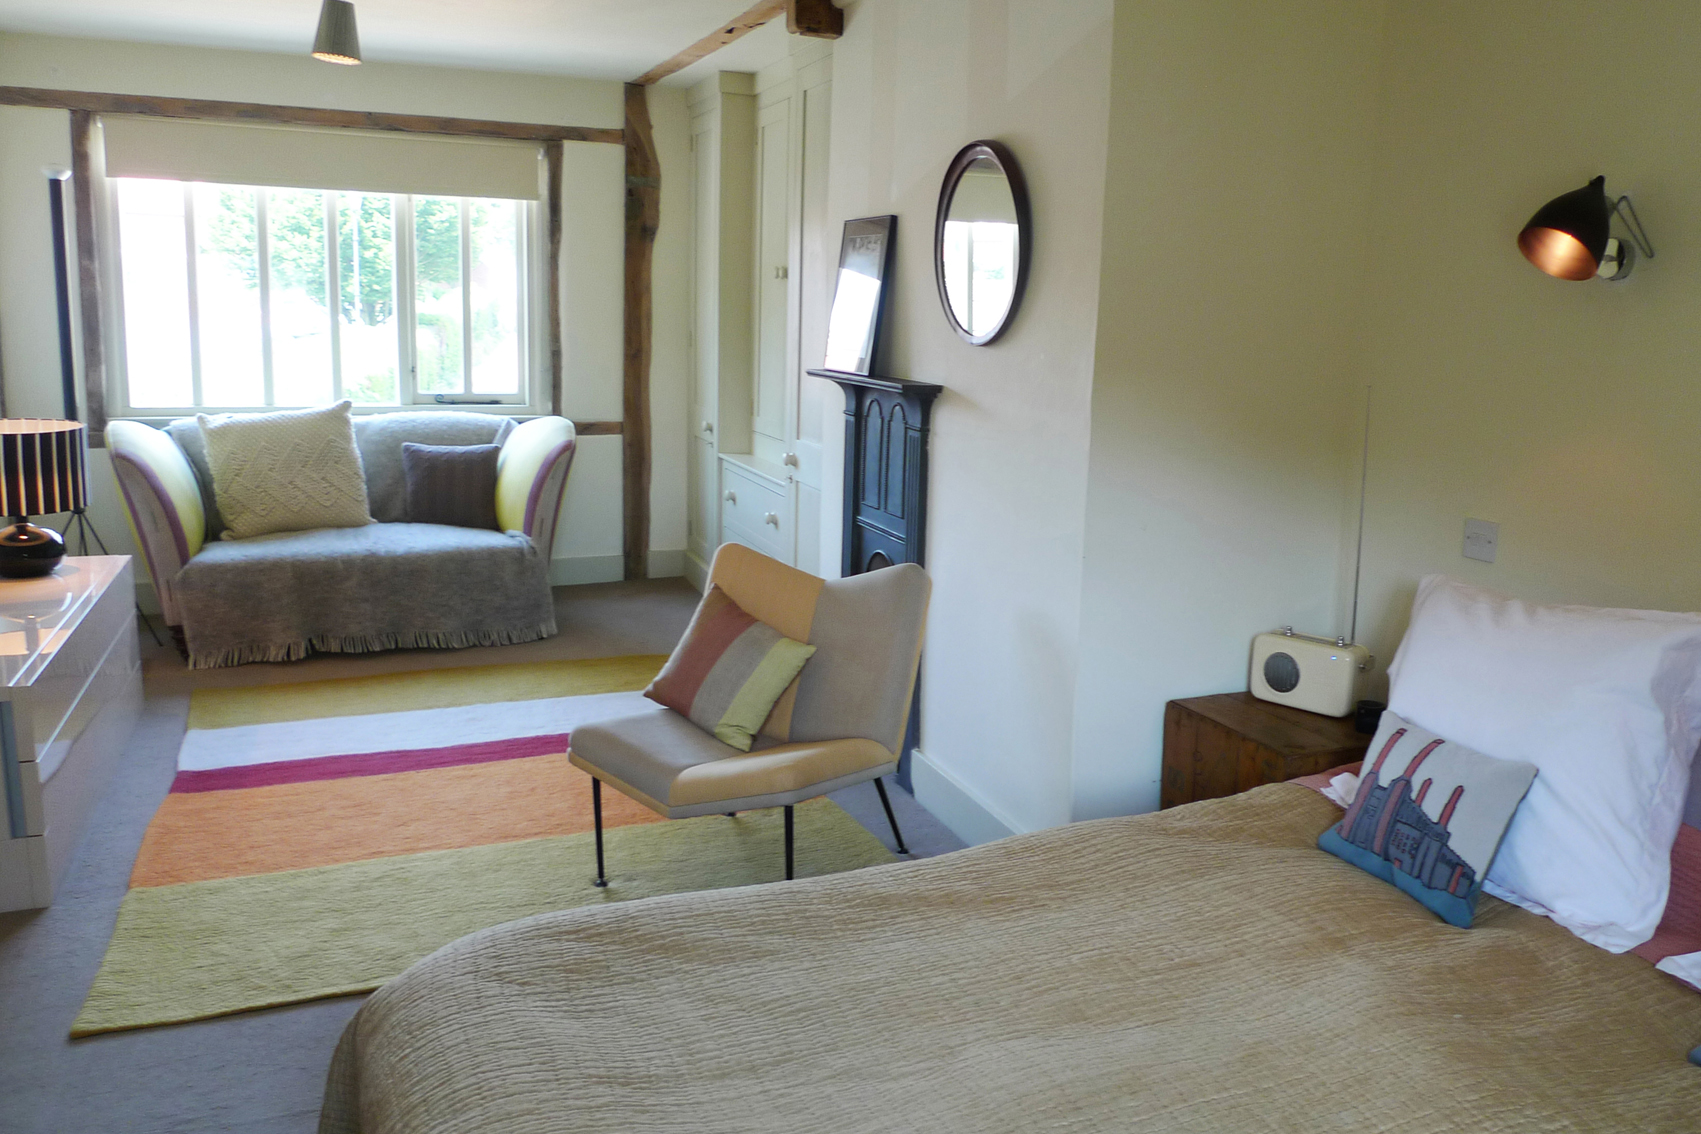 Blofields Room - A long weekend (minimum of three nights) in this room with a 15% discount costs £302 - down from £355 including all breakfasts. This discount can be applied for other days - for example a 3 days mid-week stay would reduce from £345 to £293)